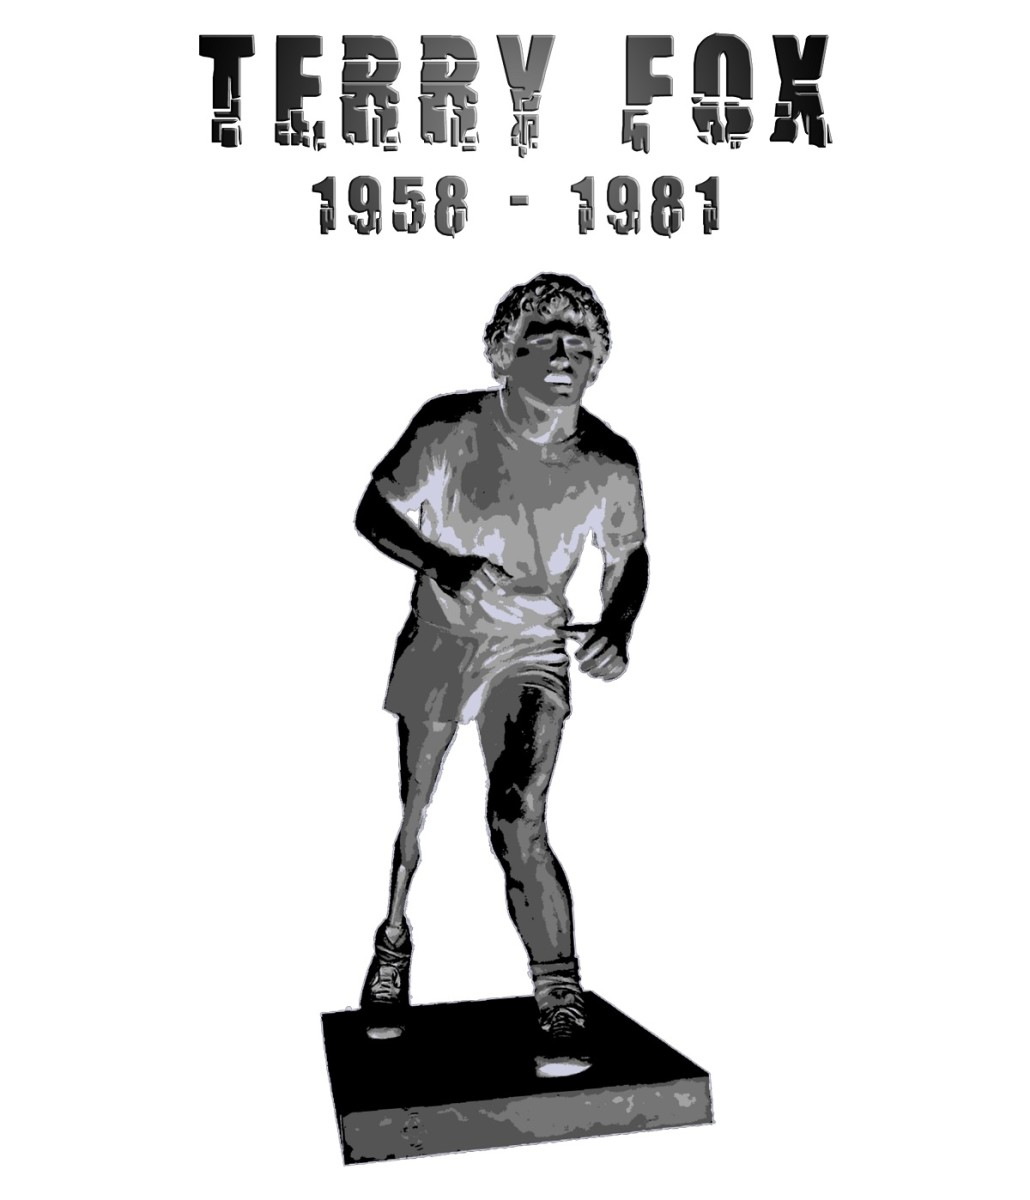 Terry Fox (1958-1981) was a was a Canadian athlete and cancer research activist who attempted to run across Canada with only one leg. He eventually lost his life to cancer but not after running for 143 days. Image used with permission.